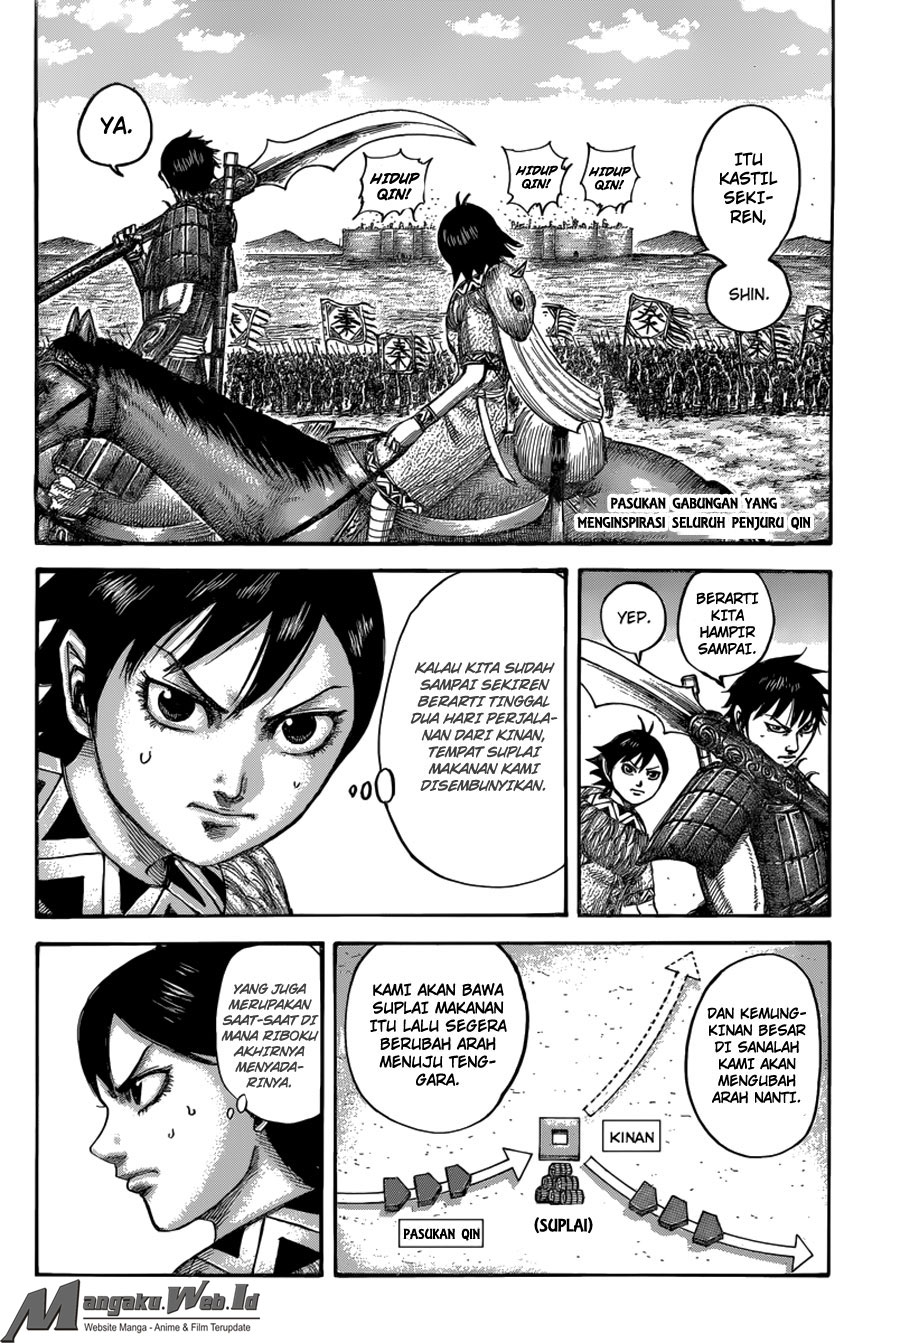 Baca Komik Manga Kingdom Chapter 501 Komik Station